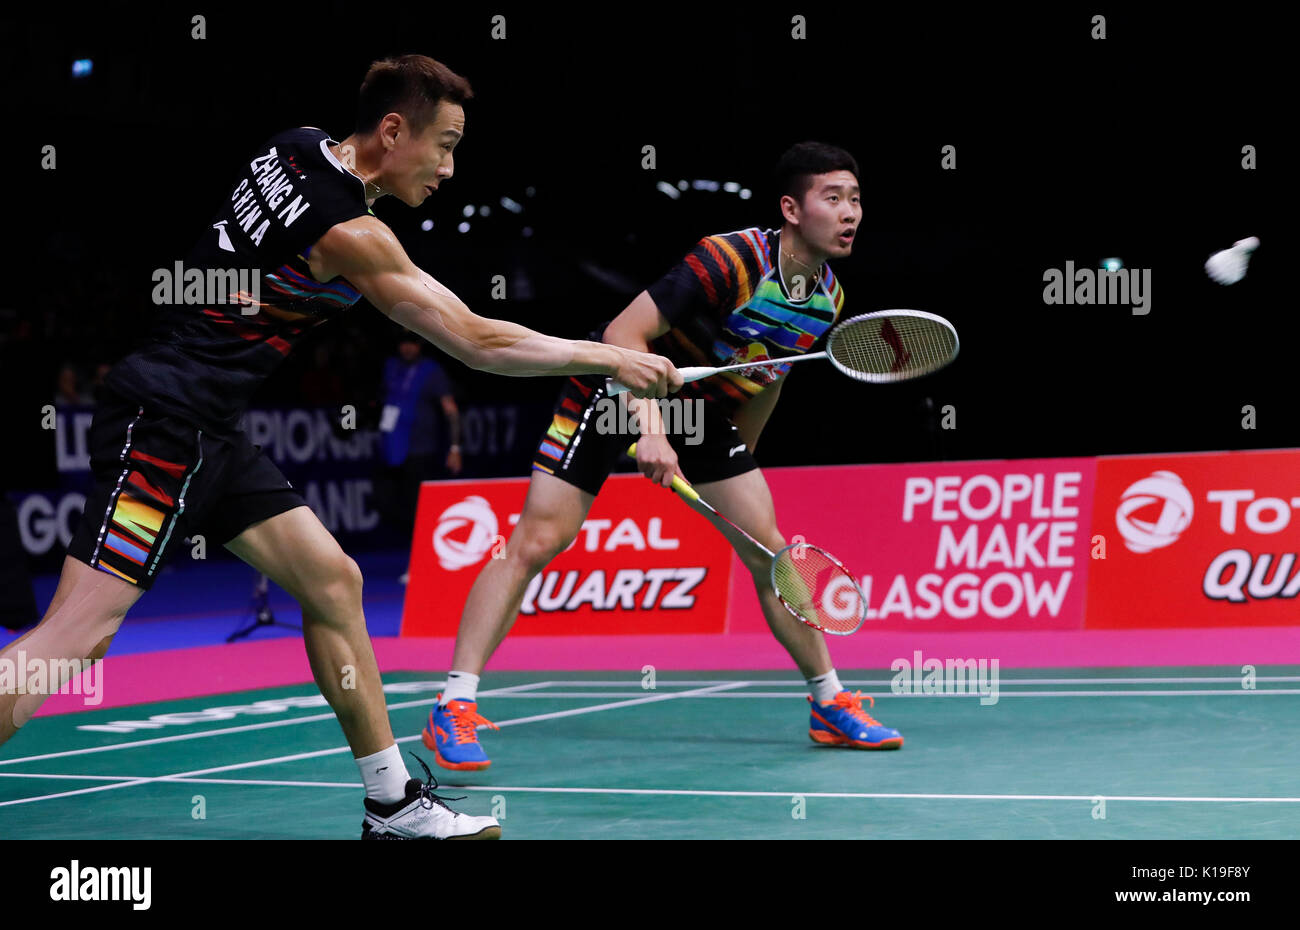 Glasgow Britain 26th Aug 2017 Liu Cheng R and Zhang Nan of